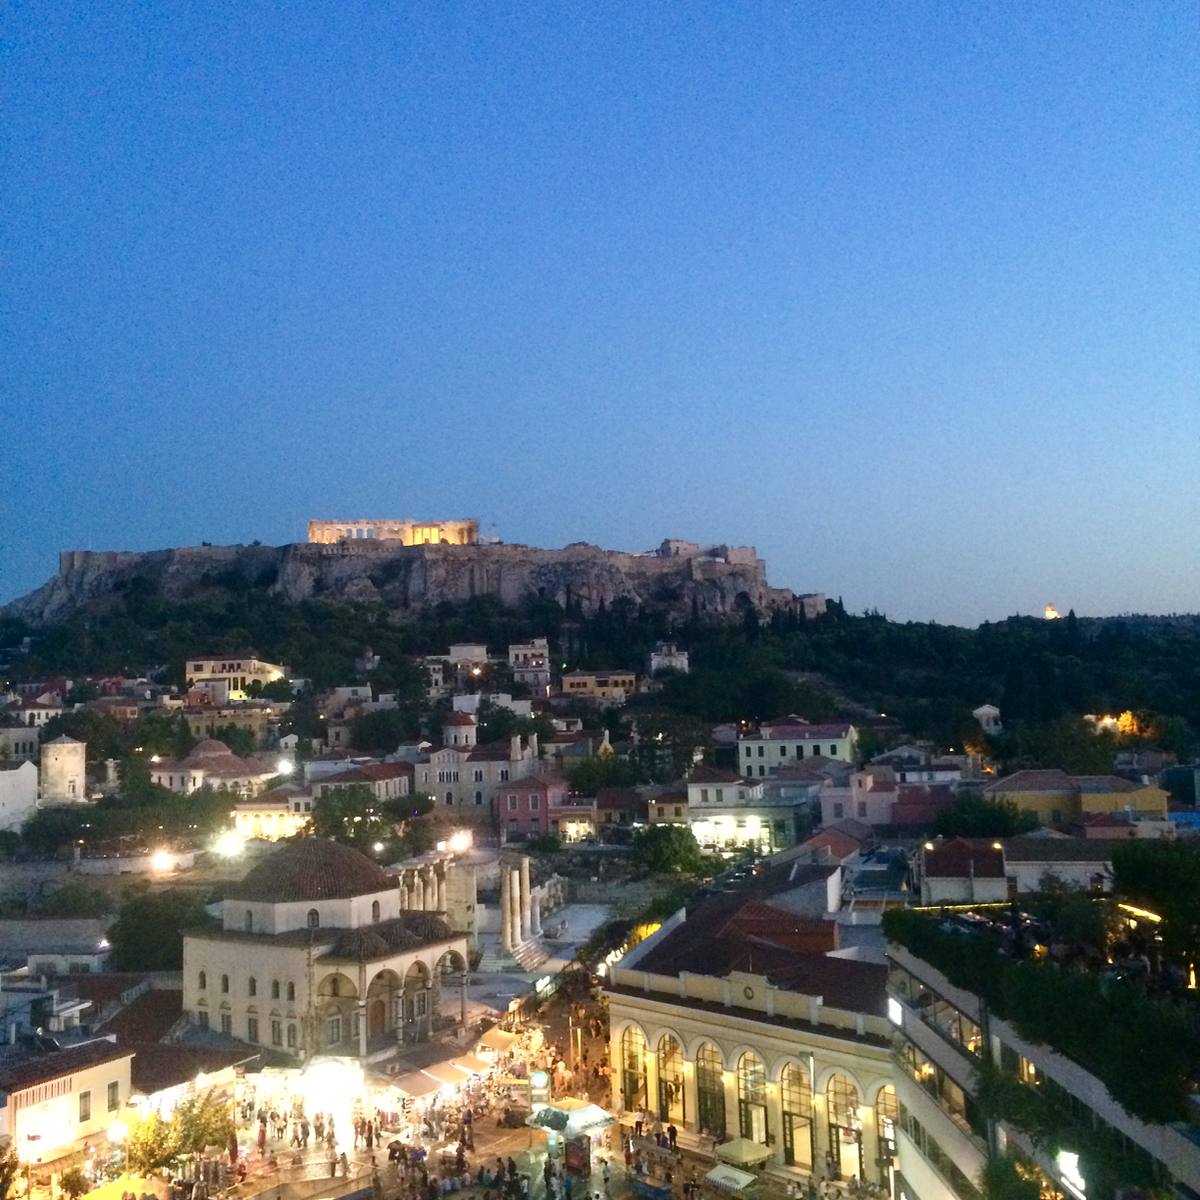 The night is upon Athens.